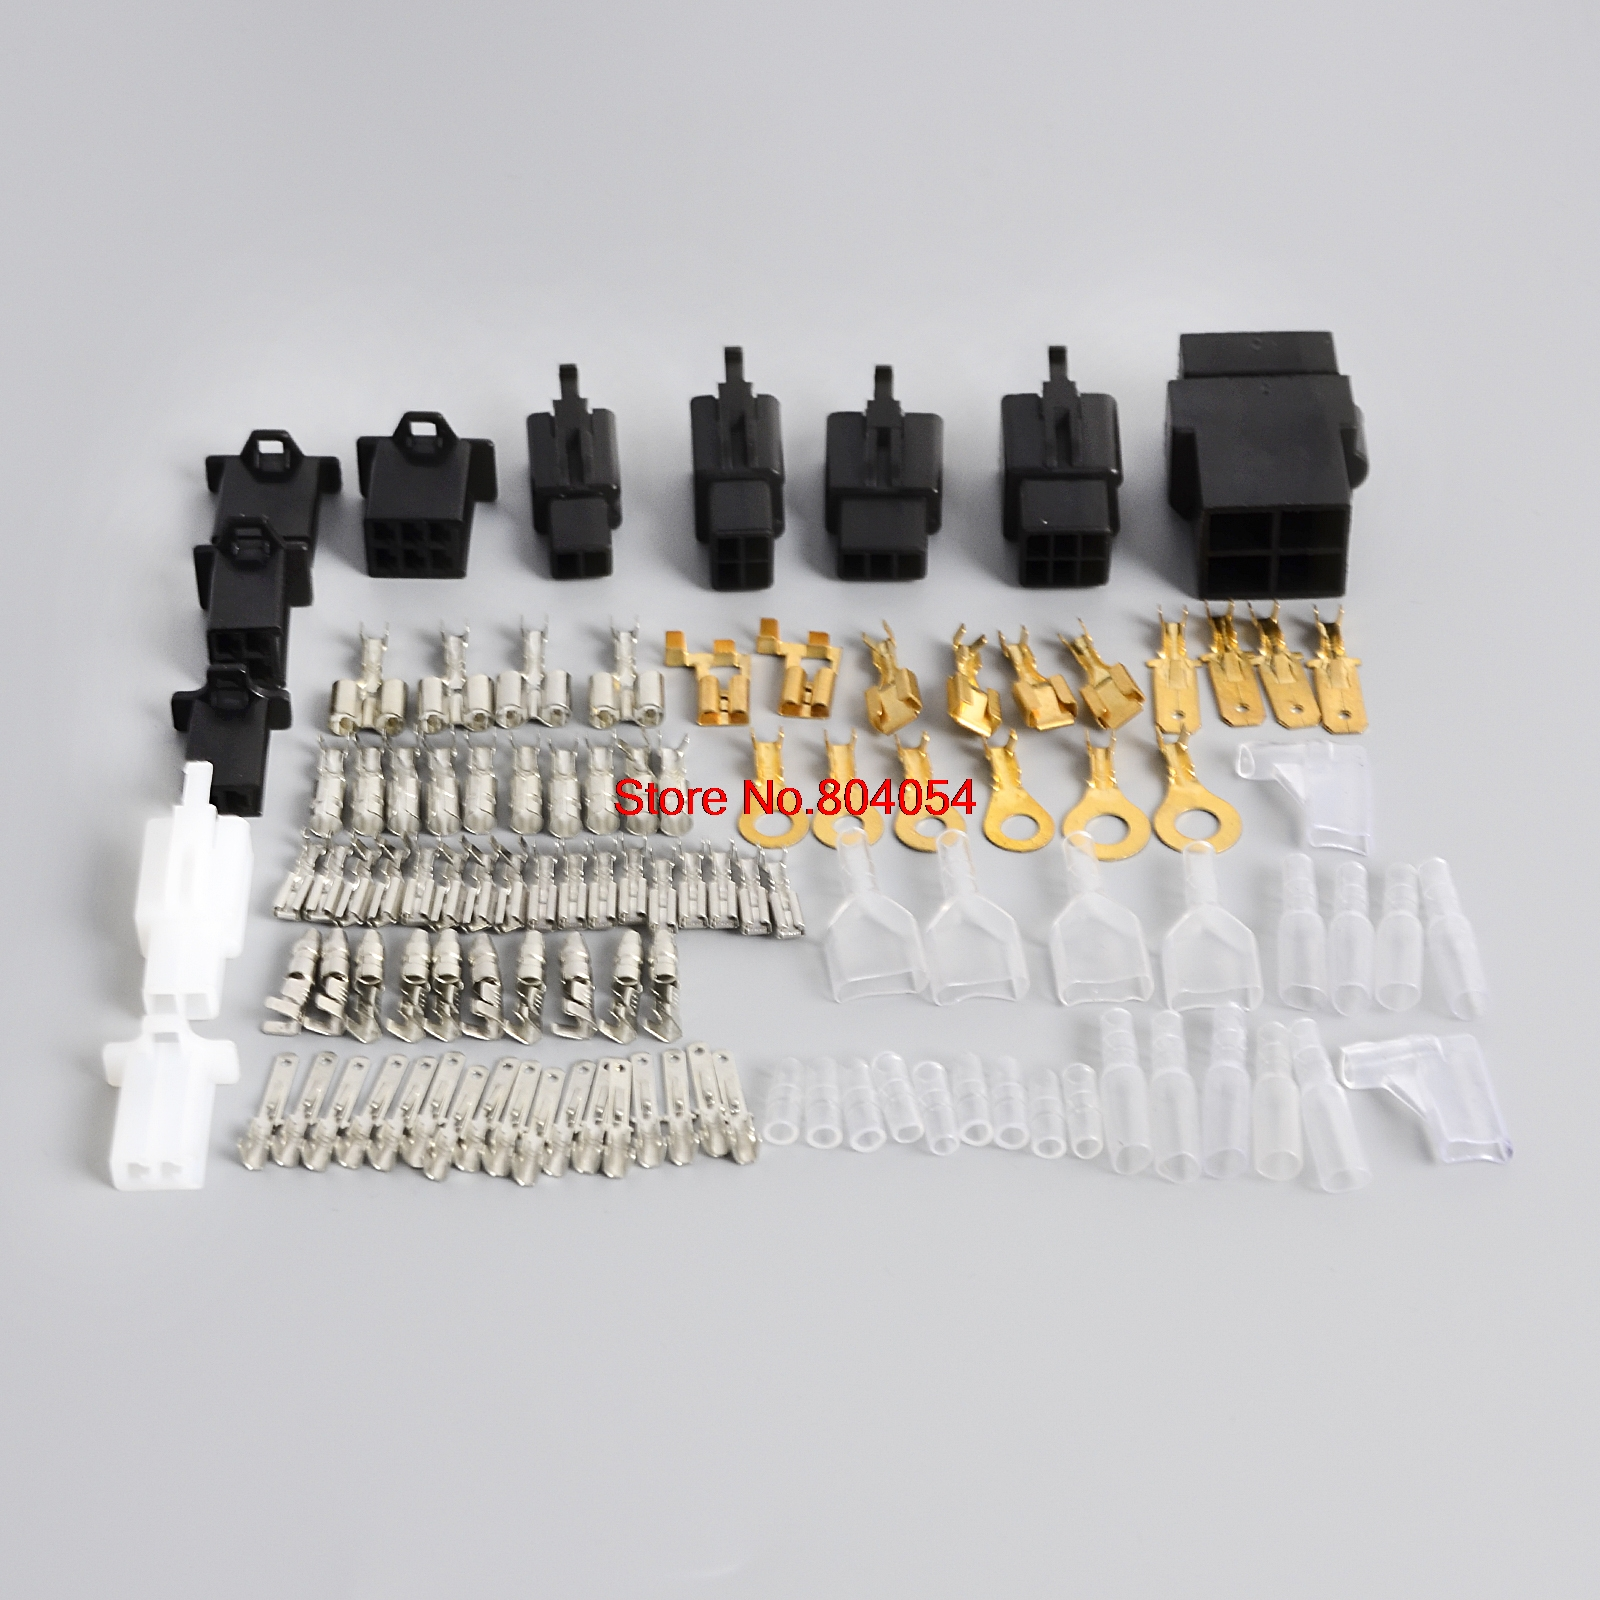 for honda yamaha kawasaki suzuki ducati motorcycle electrical wiring rh aliexpress com Wire Connector Types Wire Plug Connectors